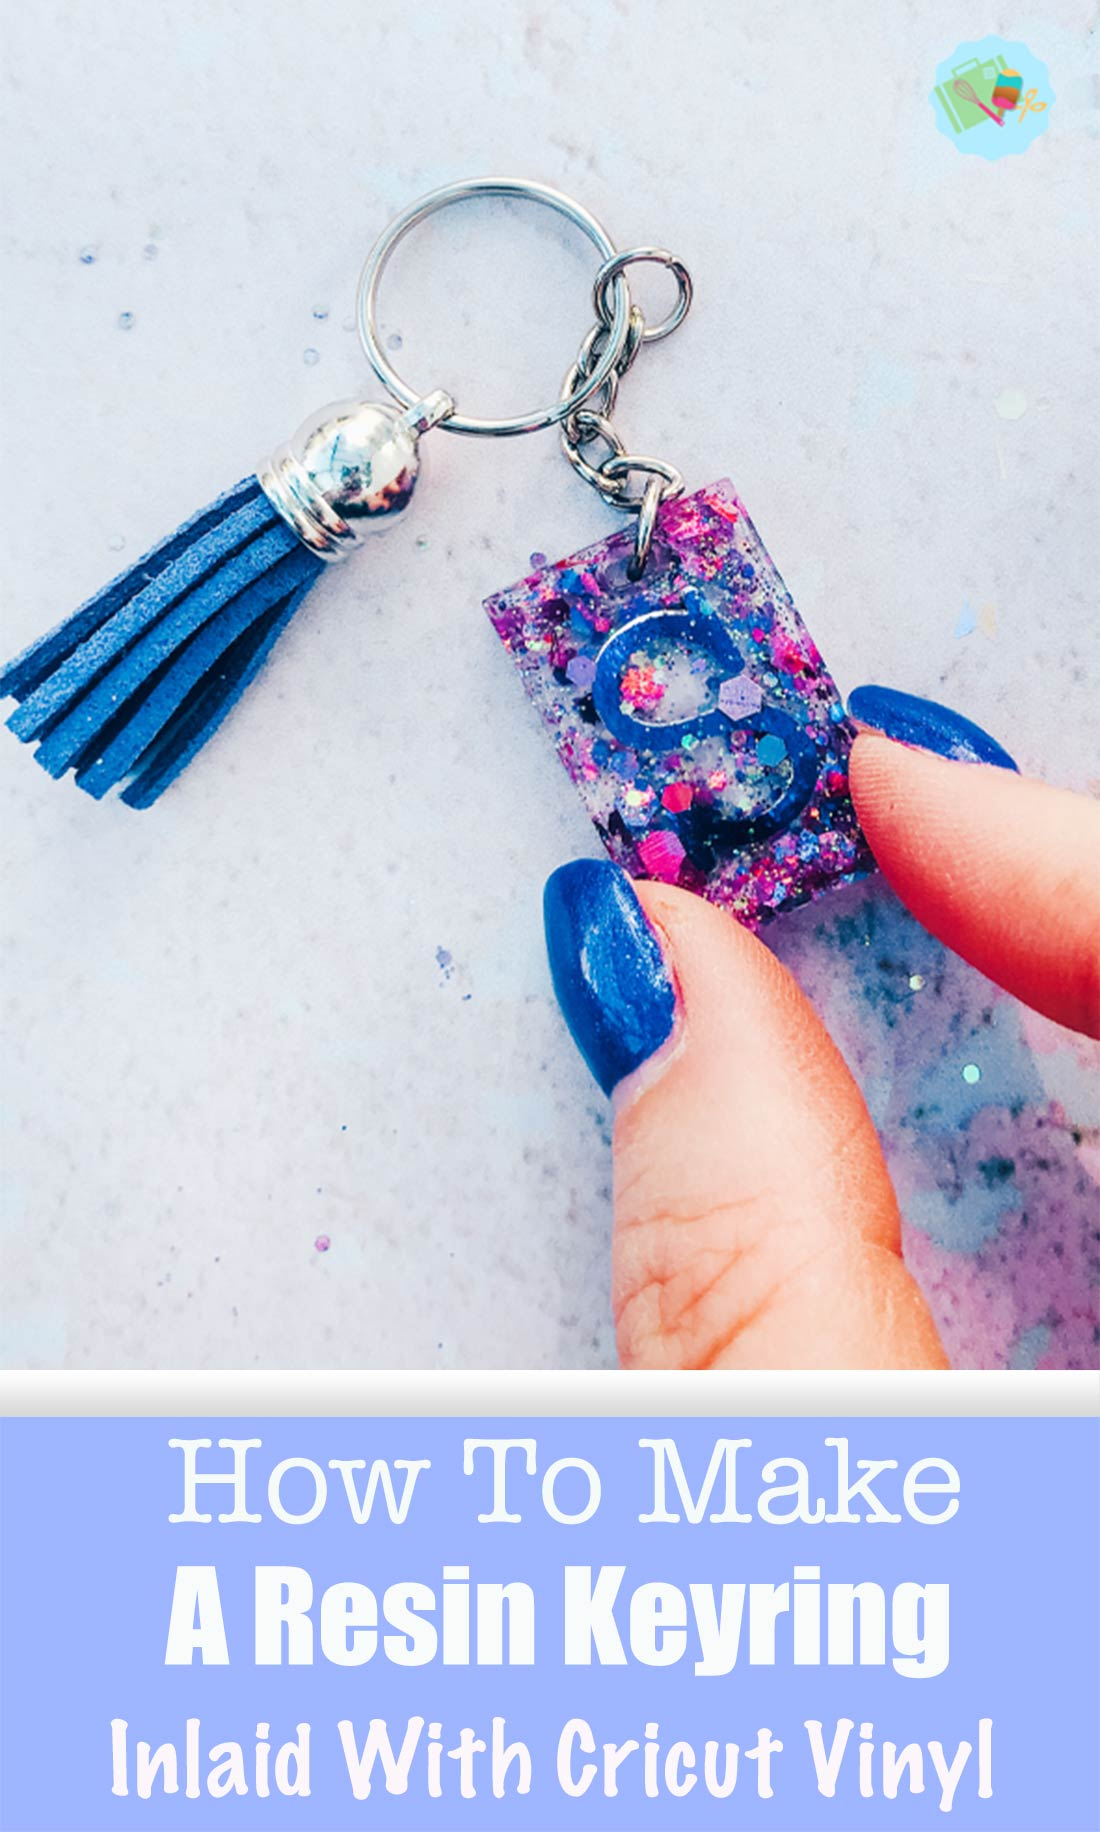 How to make a REsin Keyring inlaid with Cricut Vinyl